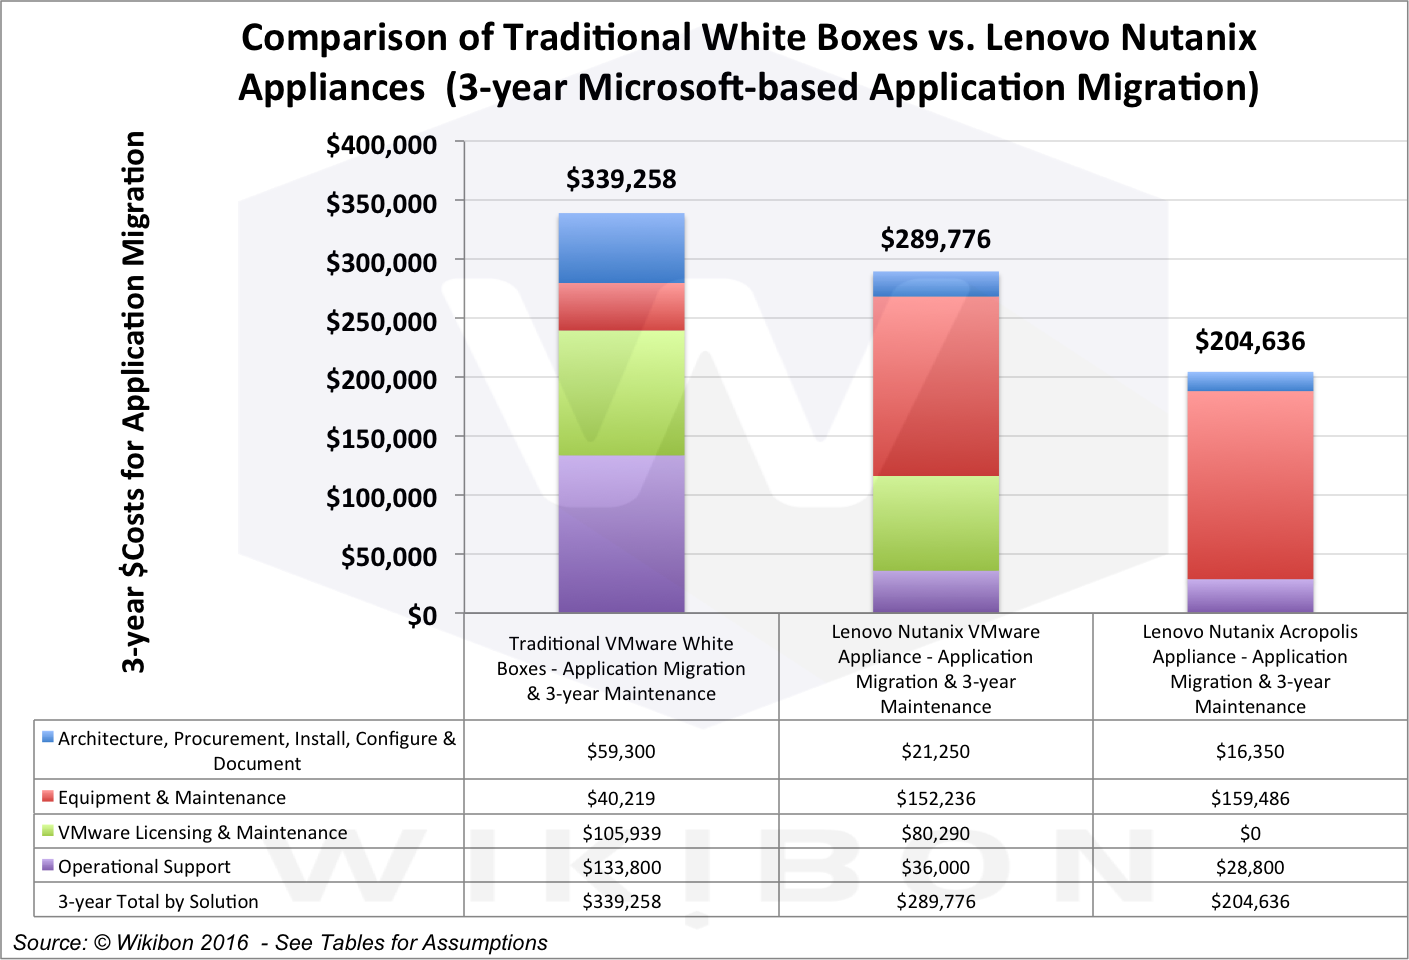 Figure 3 - 3-year Cost Breakout of Traditional VMware White Box, Lenovo/Nutanix with VMware and Lenovo/Nutanix with Acropolis Source: © Wikibon 2016See Table 3 in Footnotes for detailed assumptions